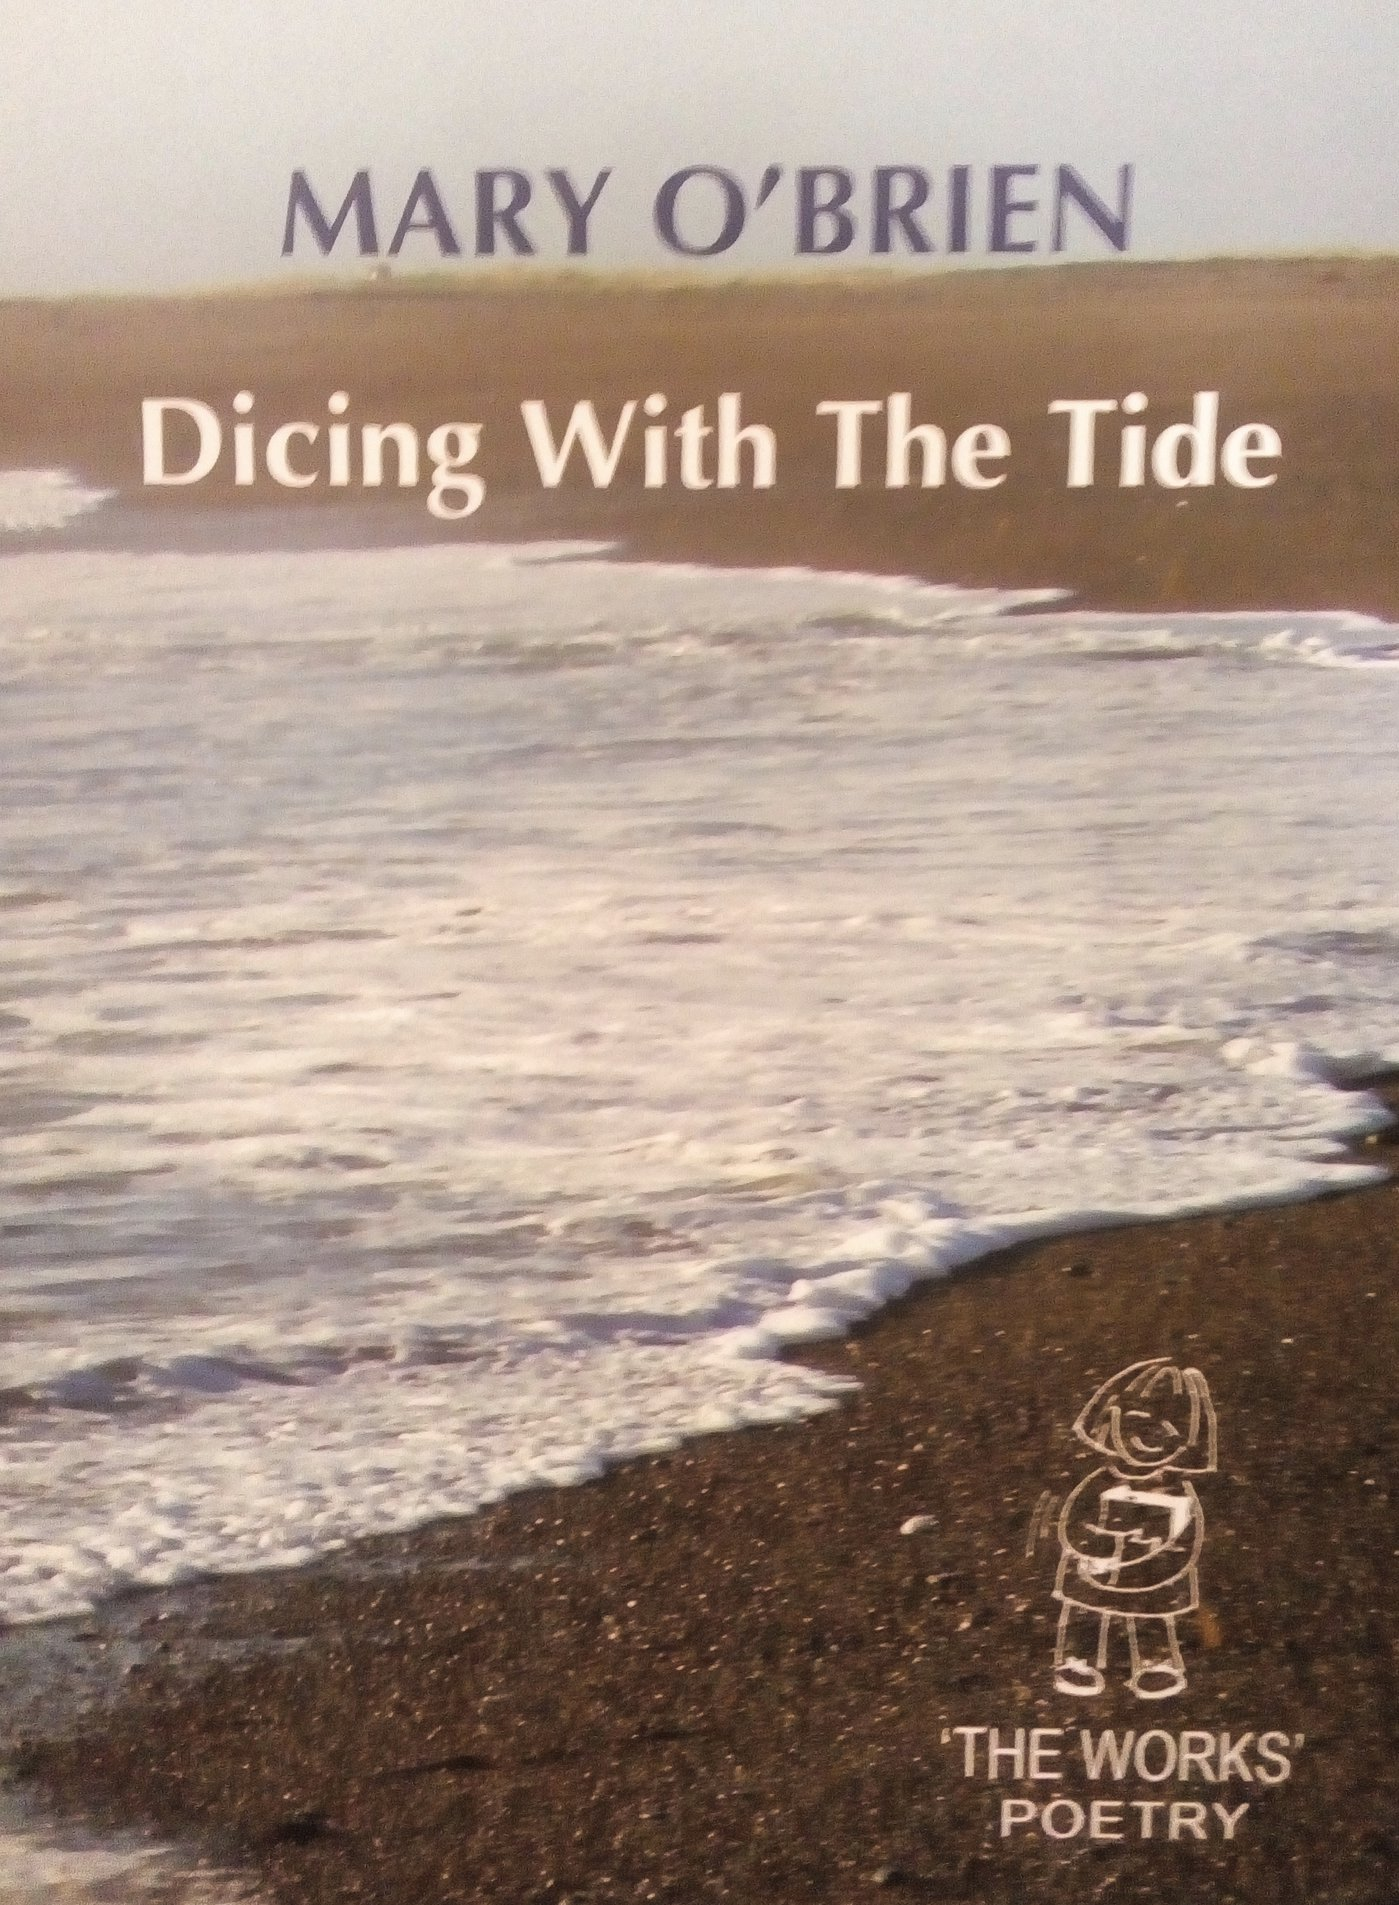 Dicing With the Tide by Mary O'Brien